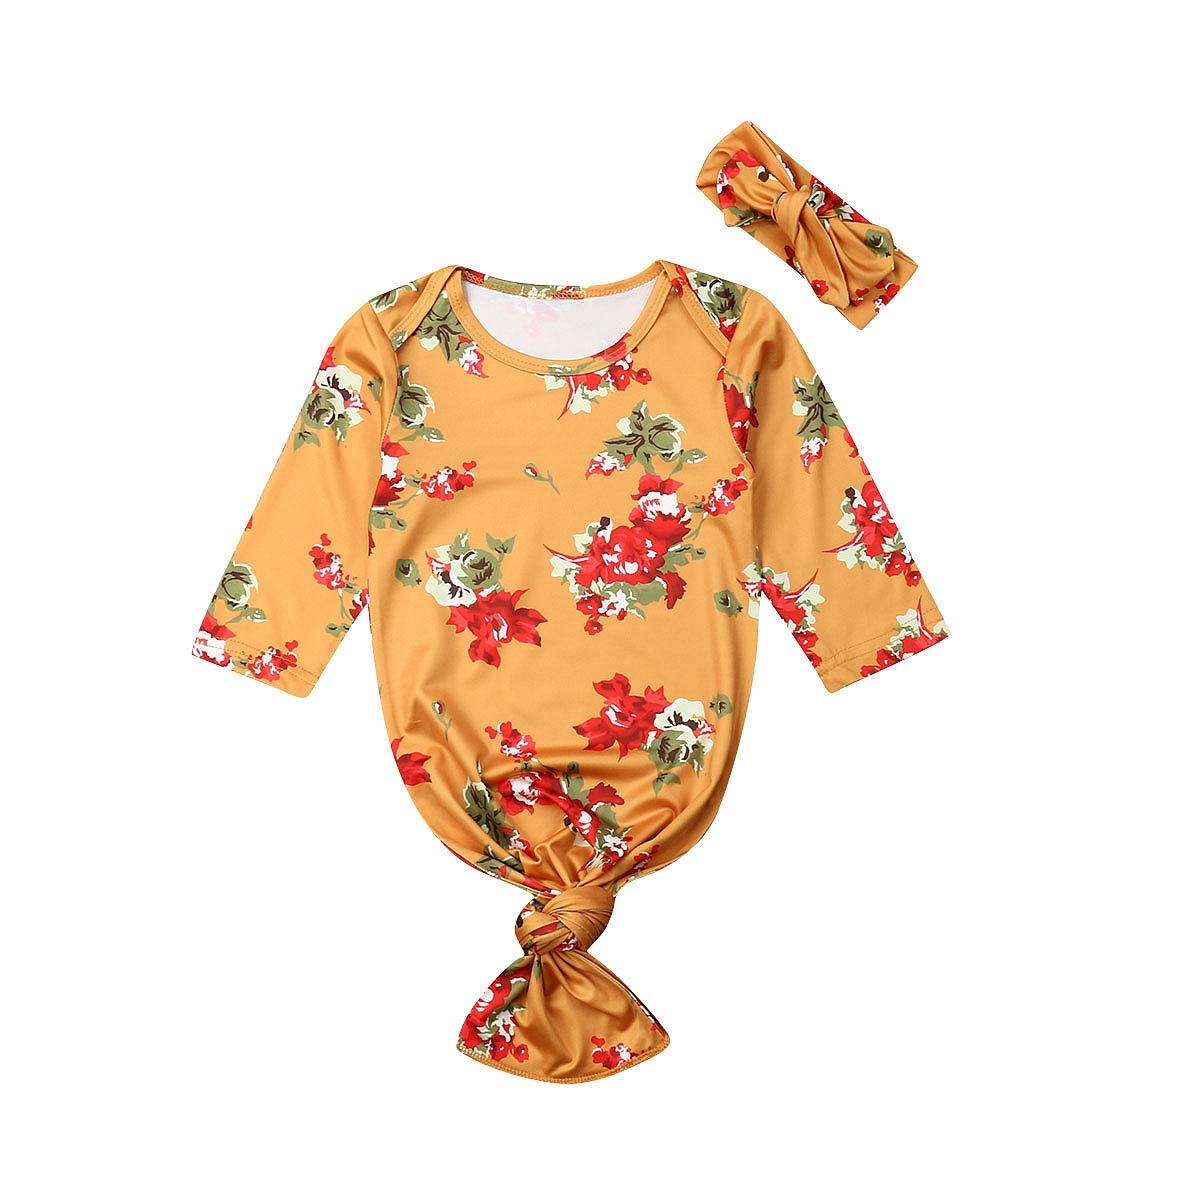 Newborn Baby Girl Sleepwear Nightgown Floral Sleeping Gown Headband Sleeping Bags Coming Home Outfits 0-6Months